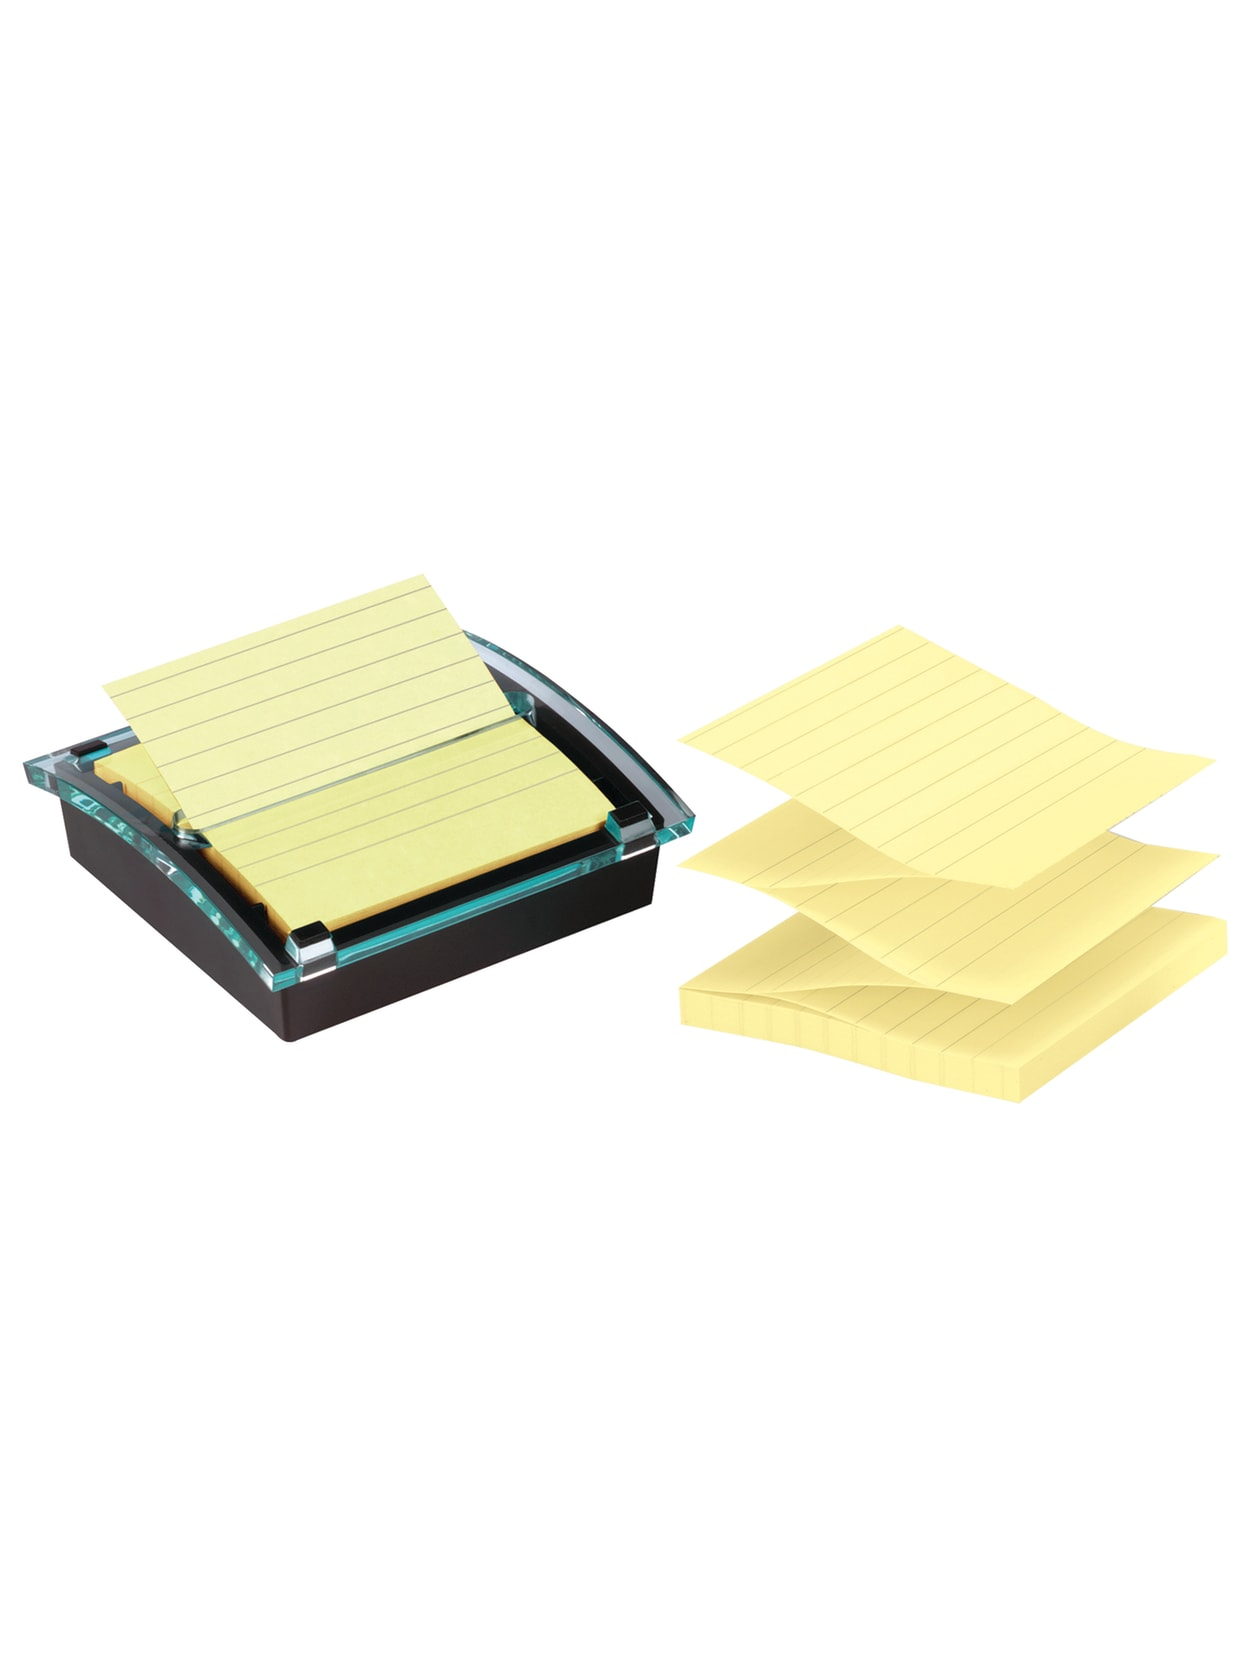 Work with 4A Sticky Pop-up Notes Black for 100 Sheets 3x3 Notes 4A PSS 7 4A Pop-up Note Dispenser 1 Dispenser//Pack